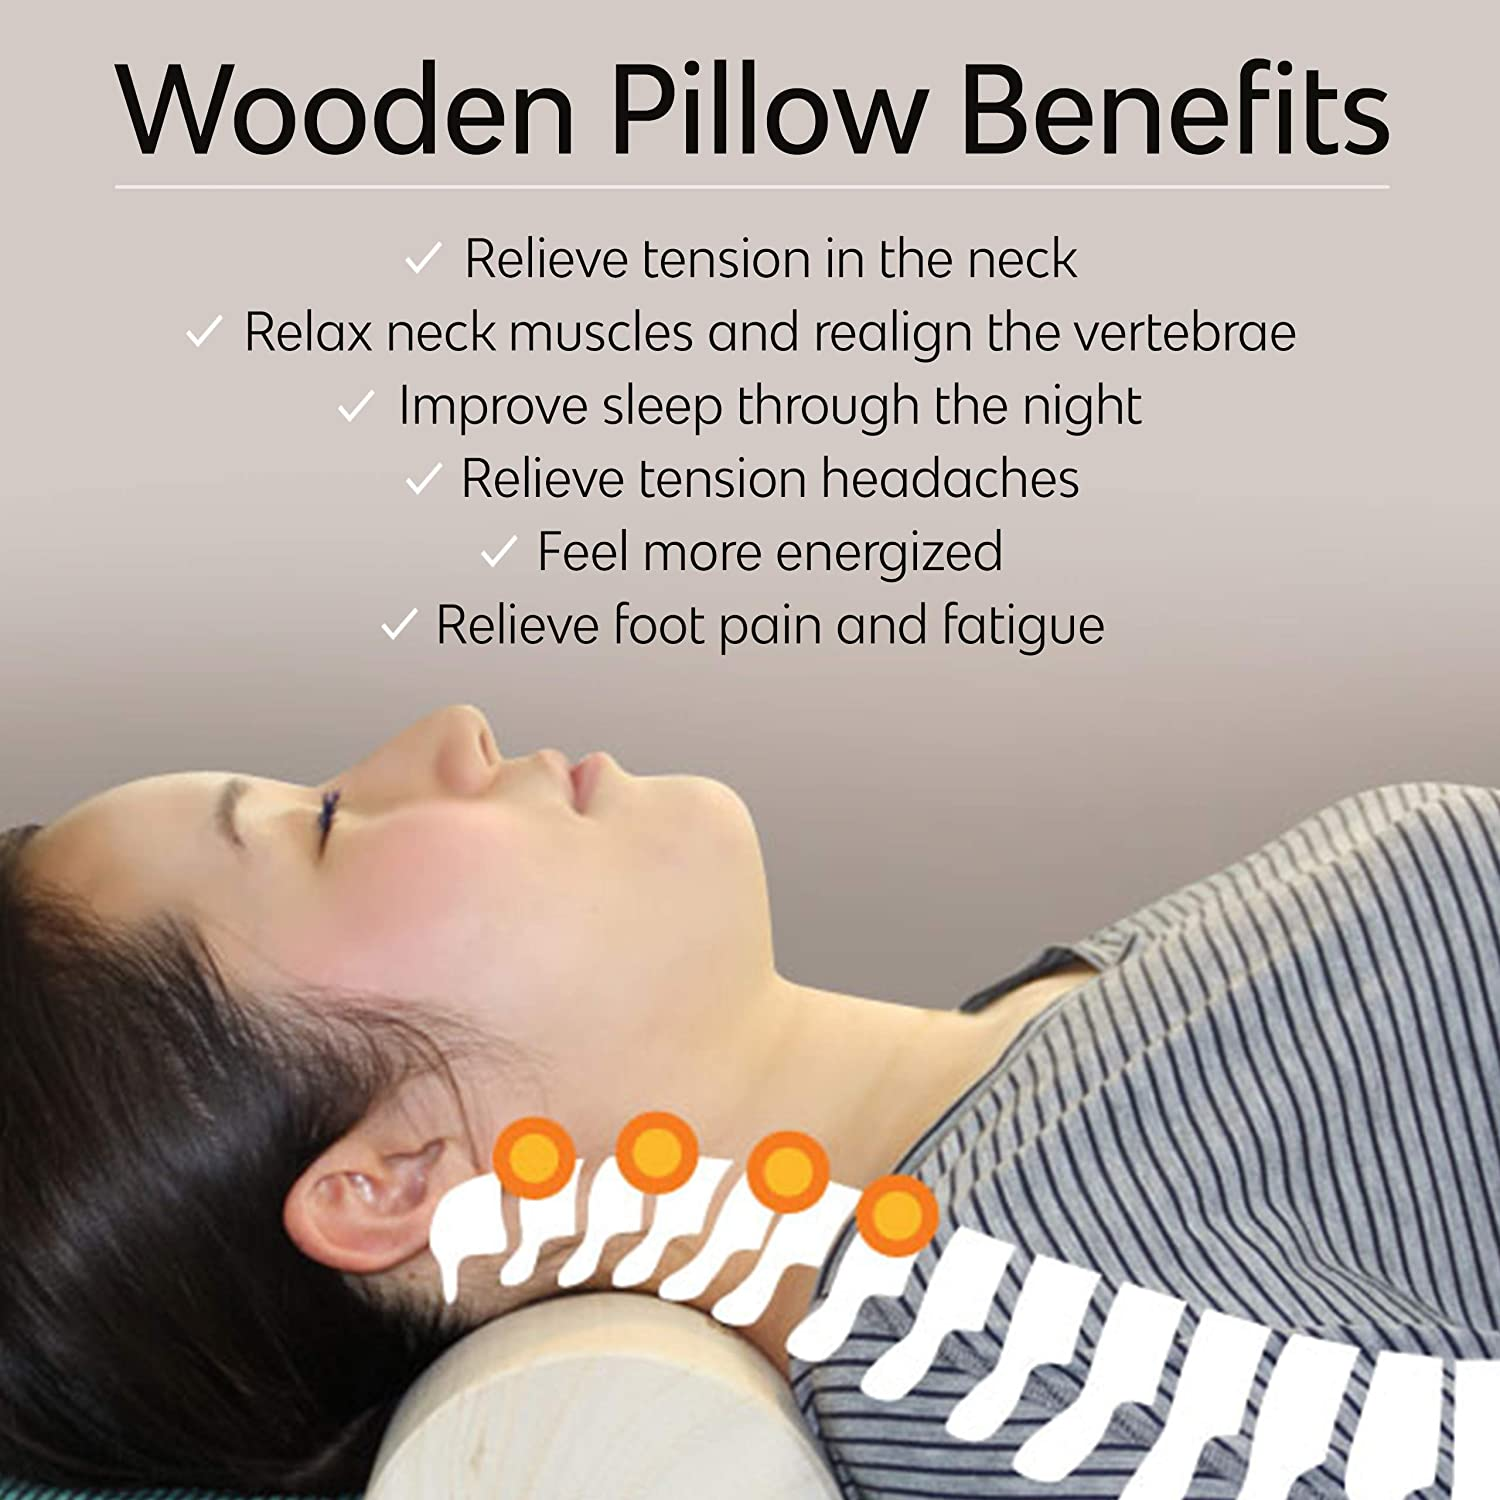 Wooden Pillow for Neck Pain and